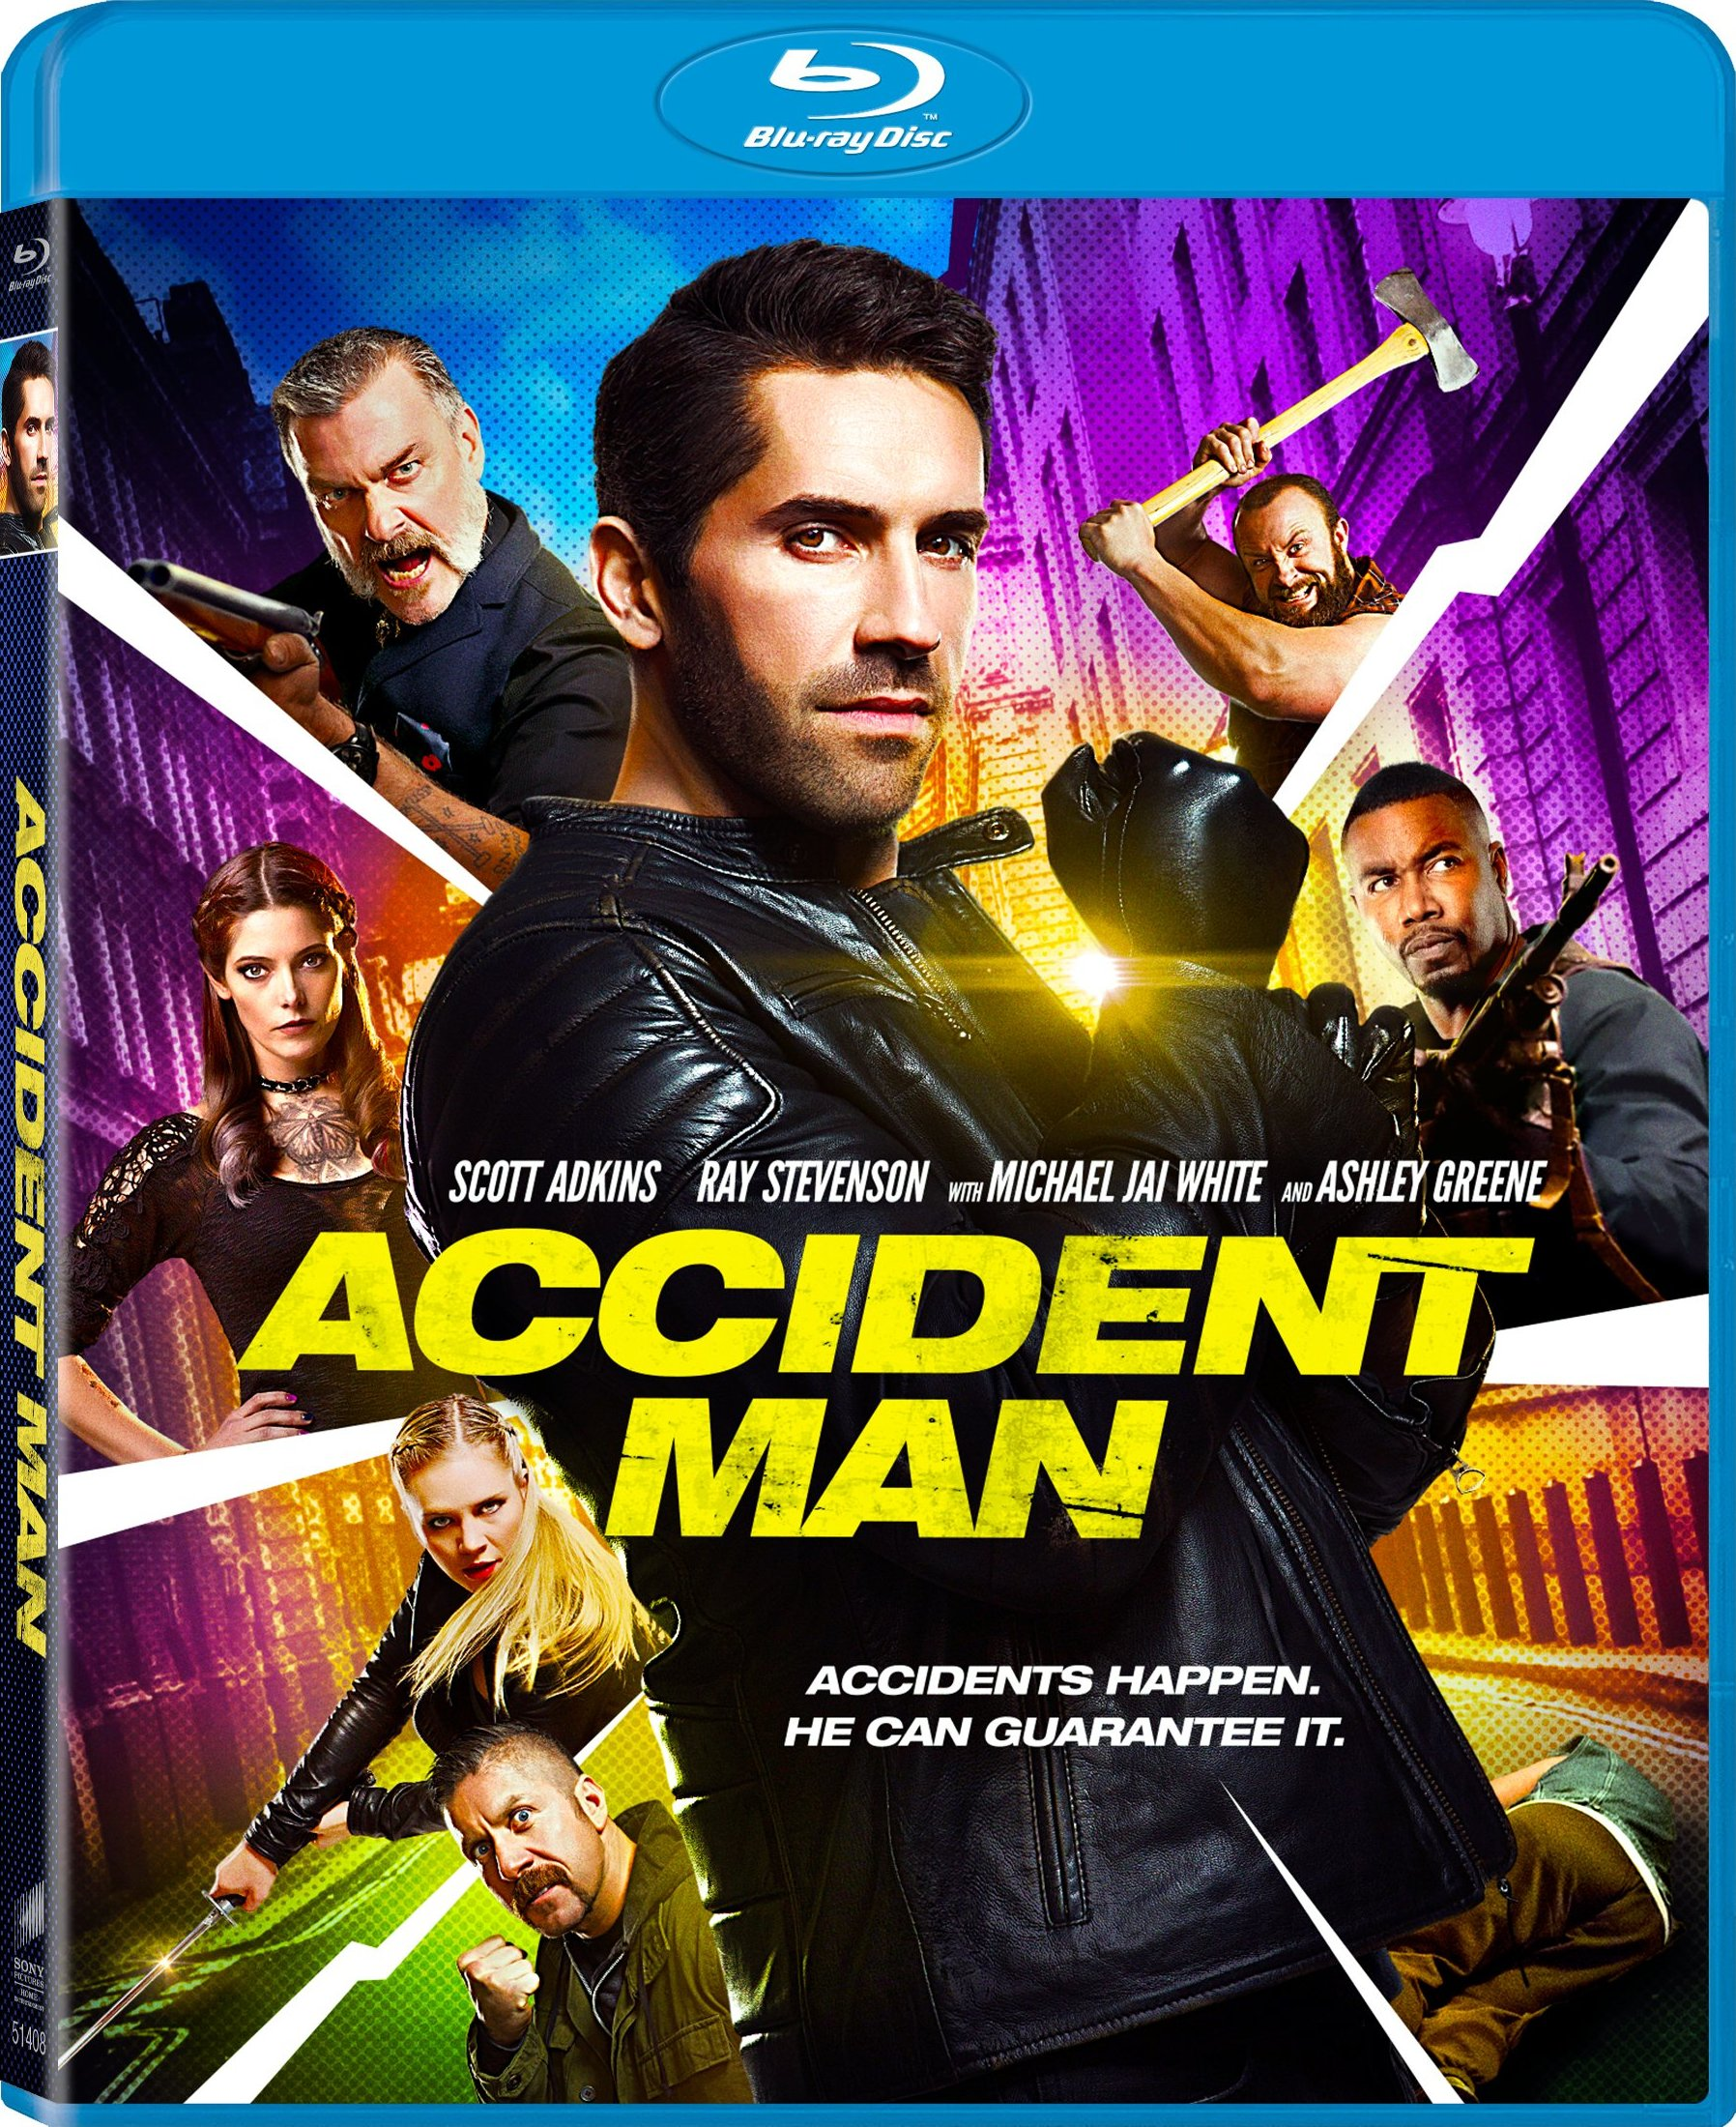 Accident Man (2017) Blu-ray